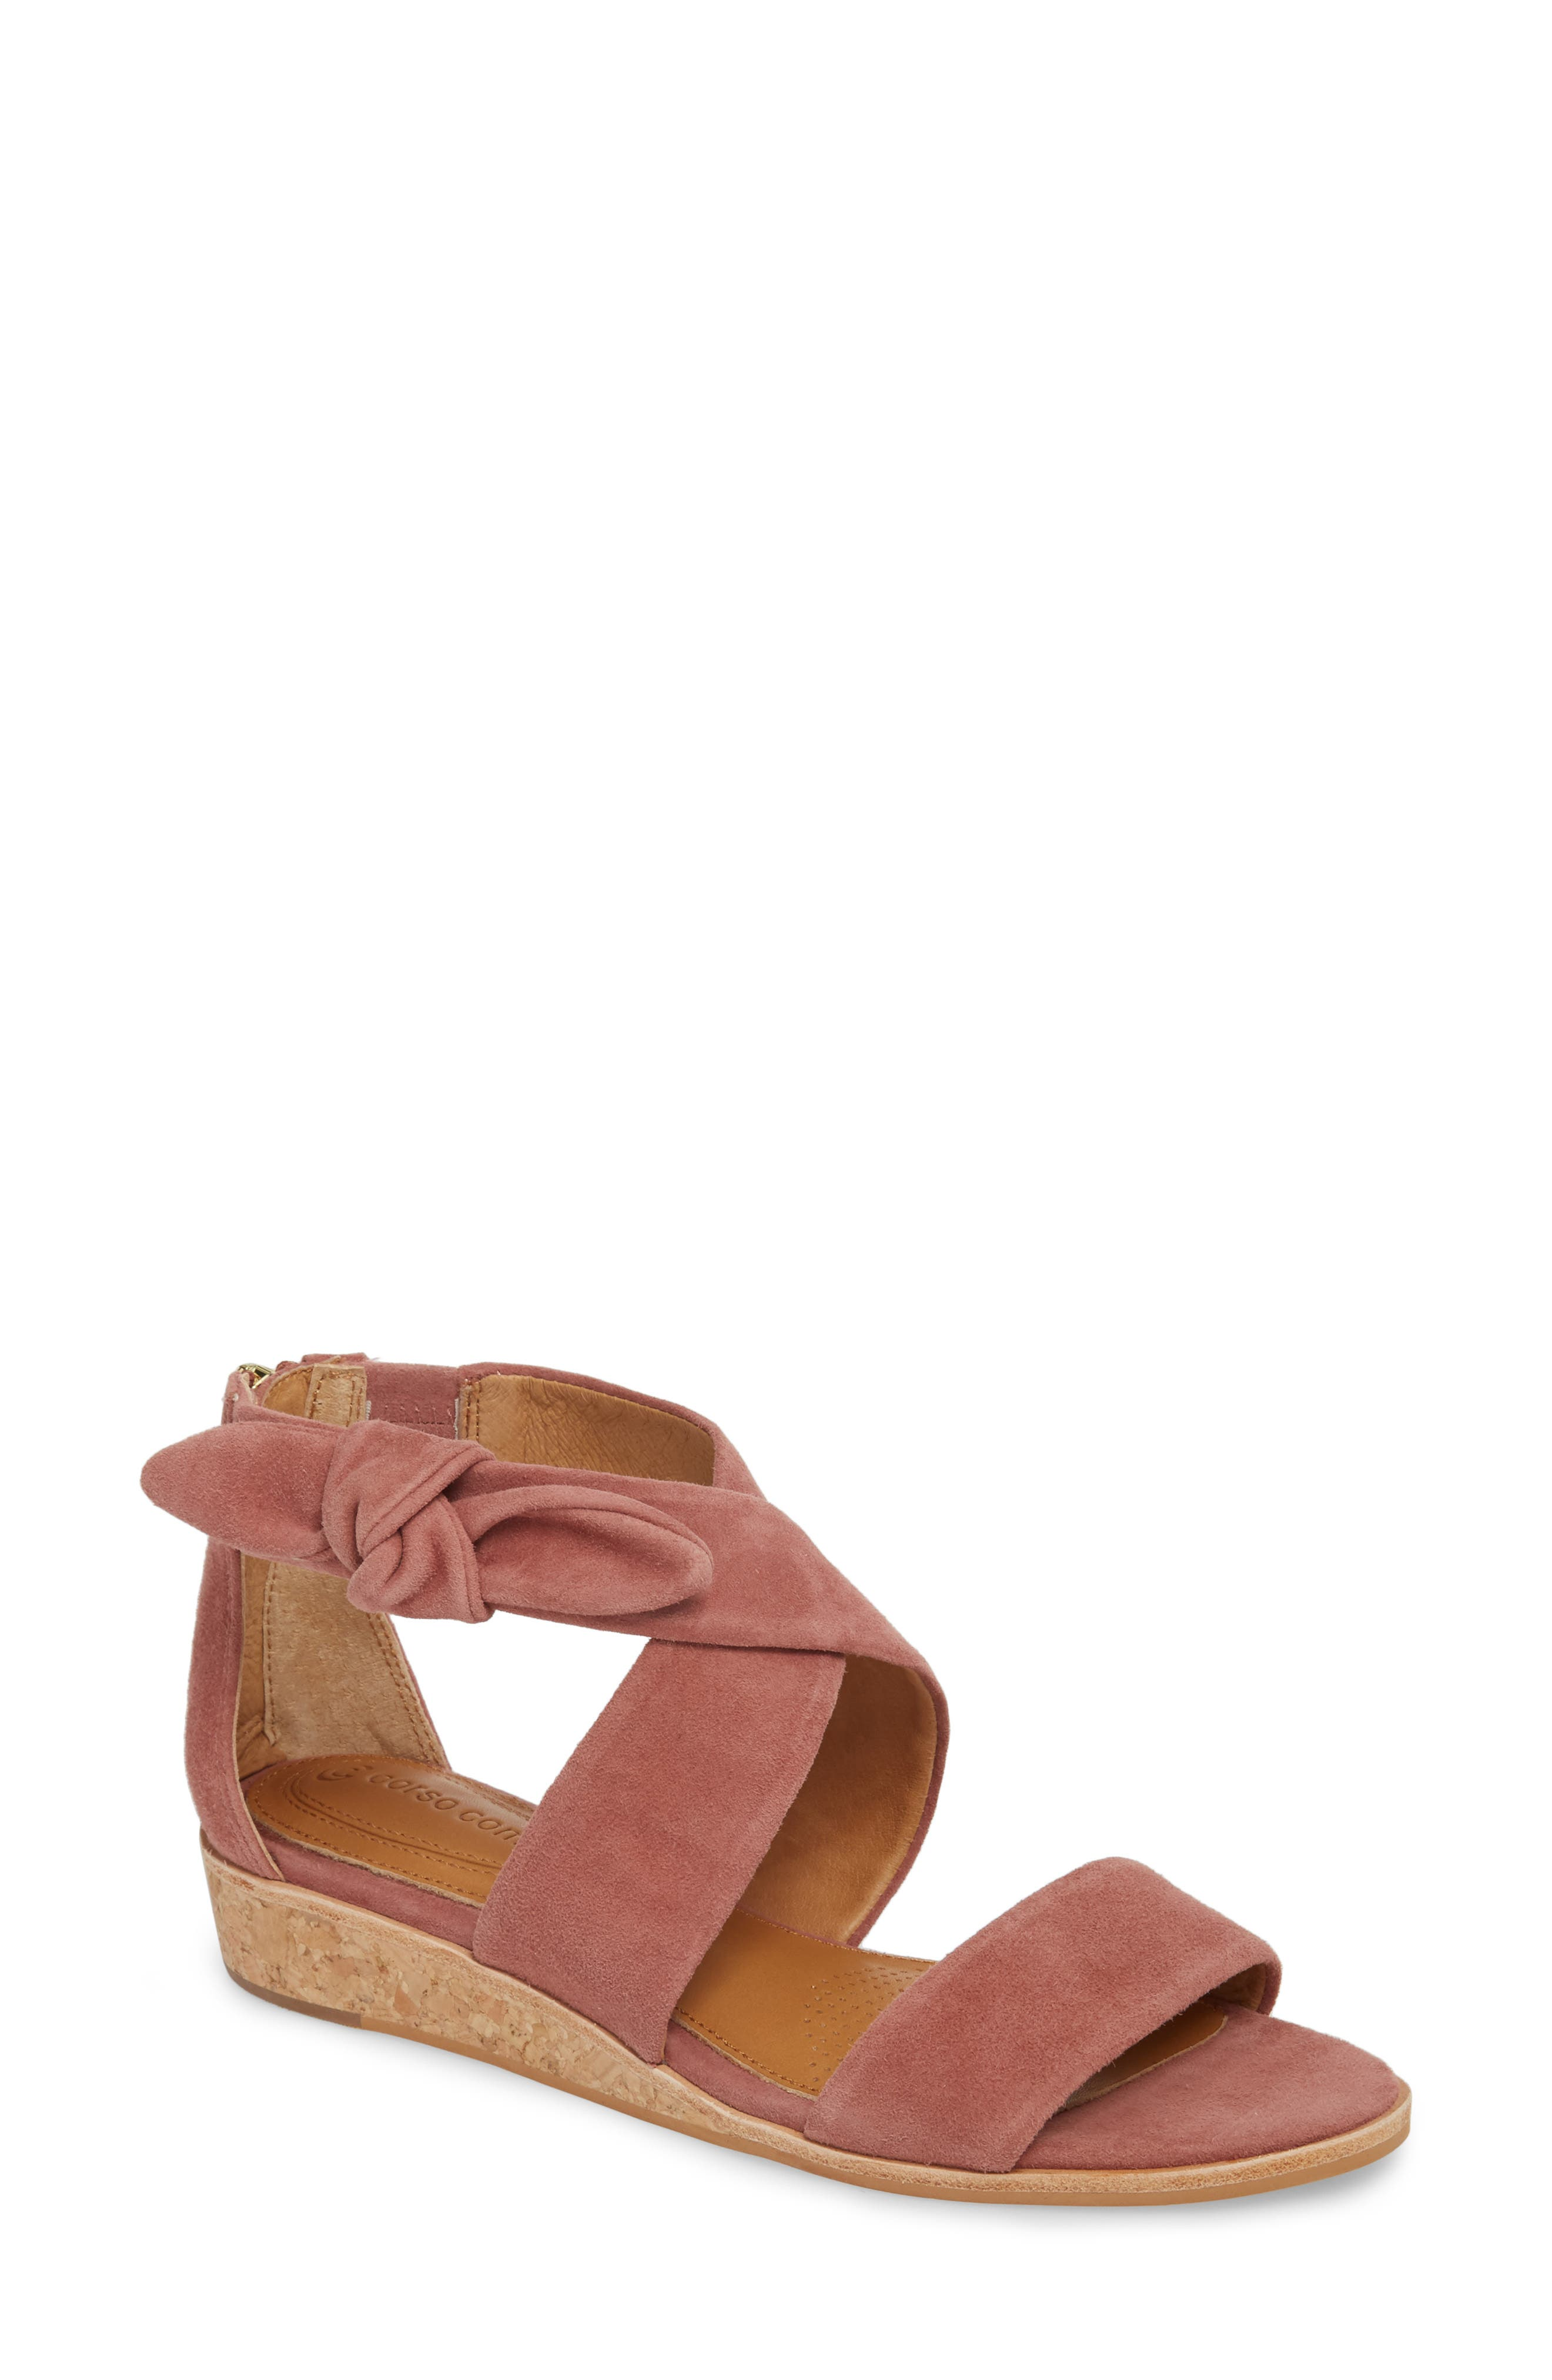 Rasque Sandal,                         Main,                         color, Old Rose Leather